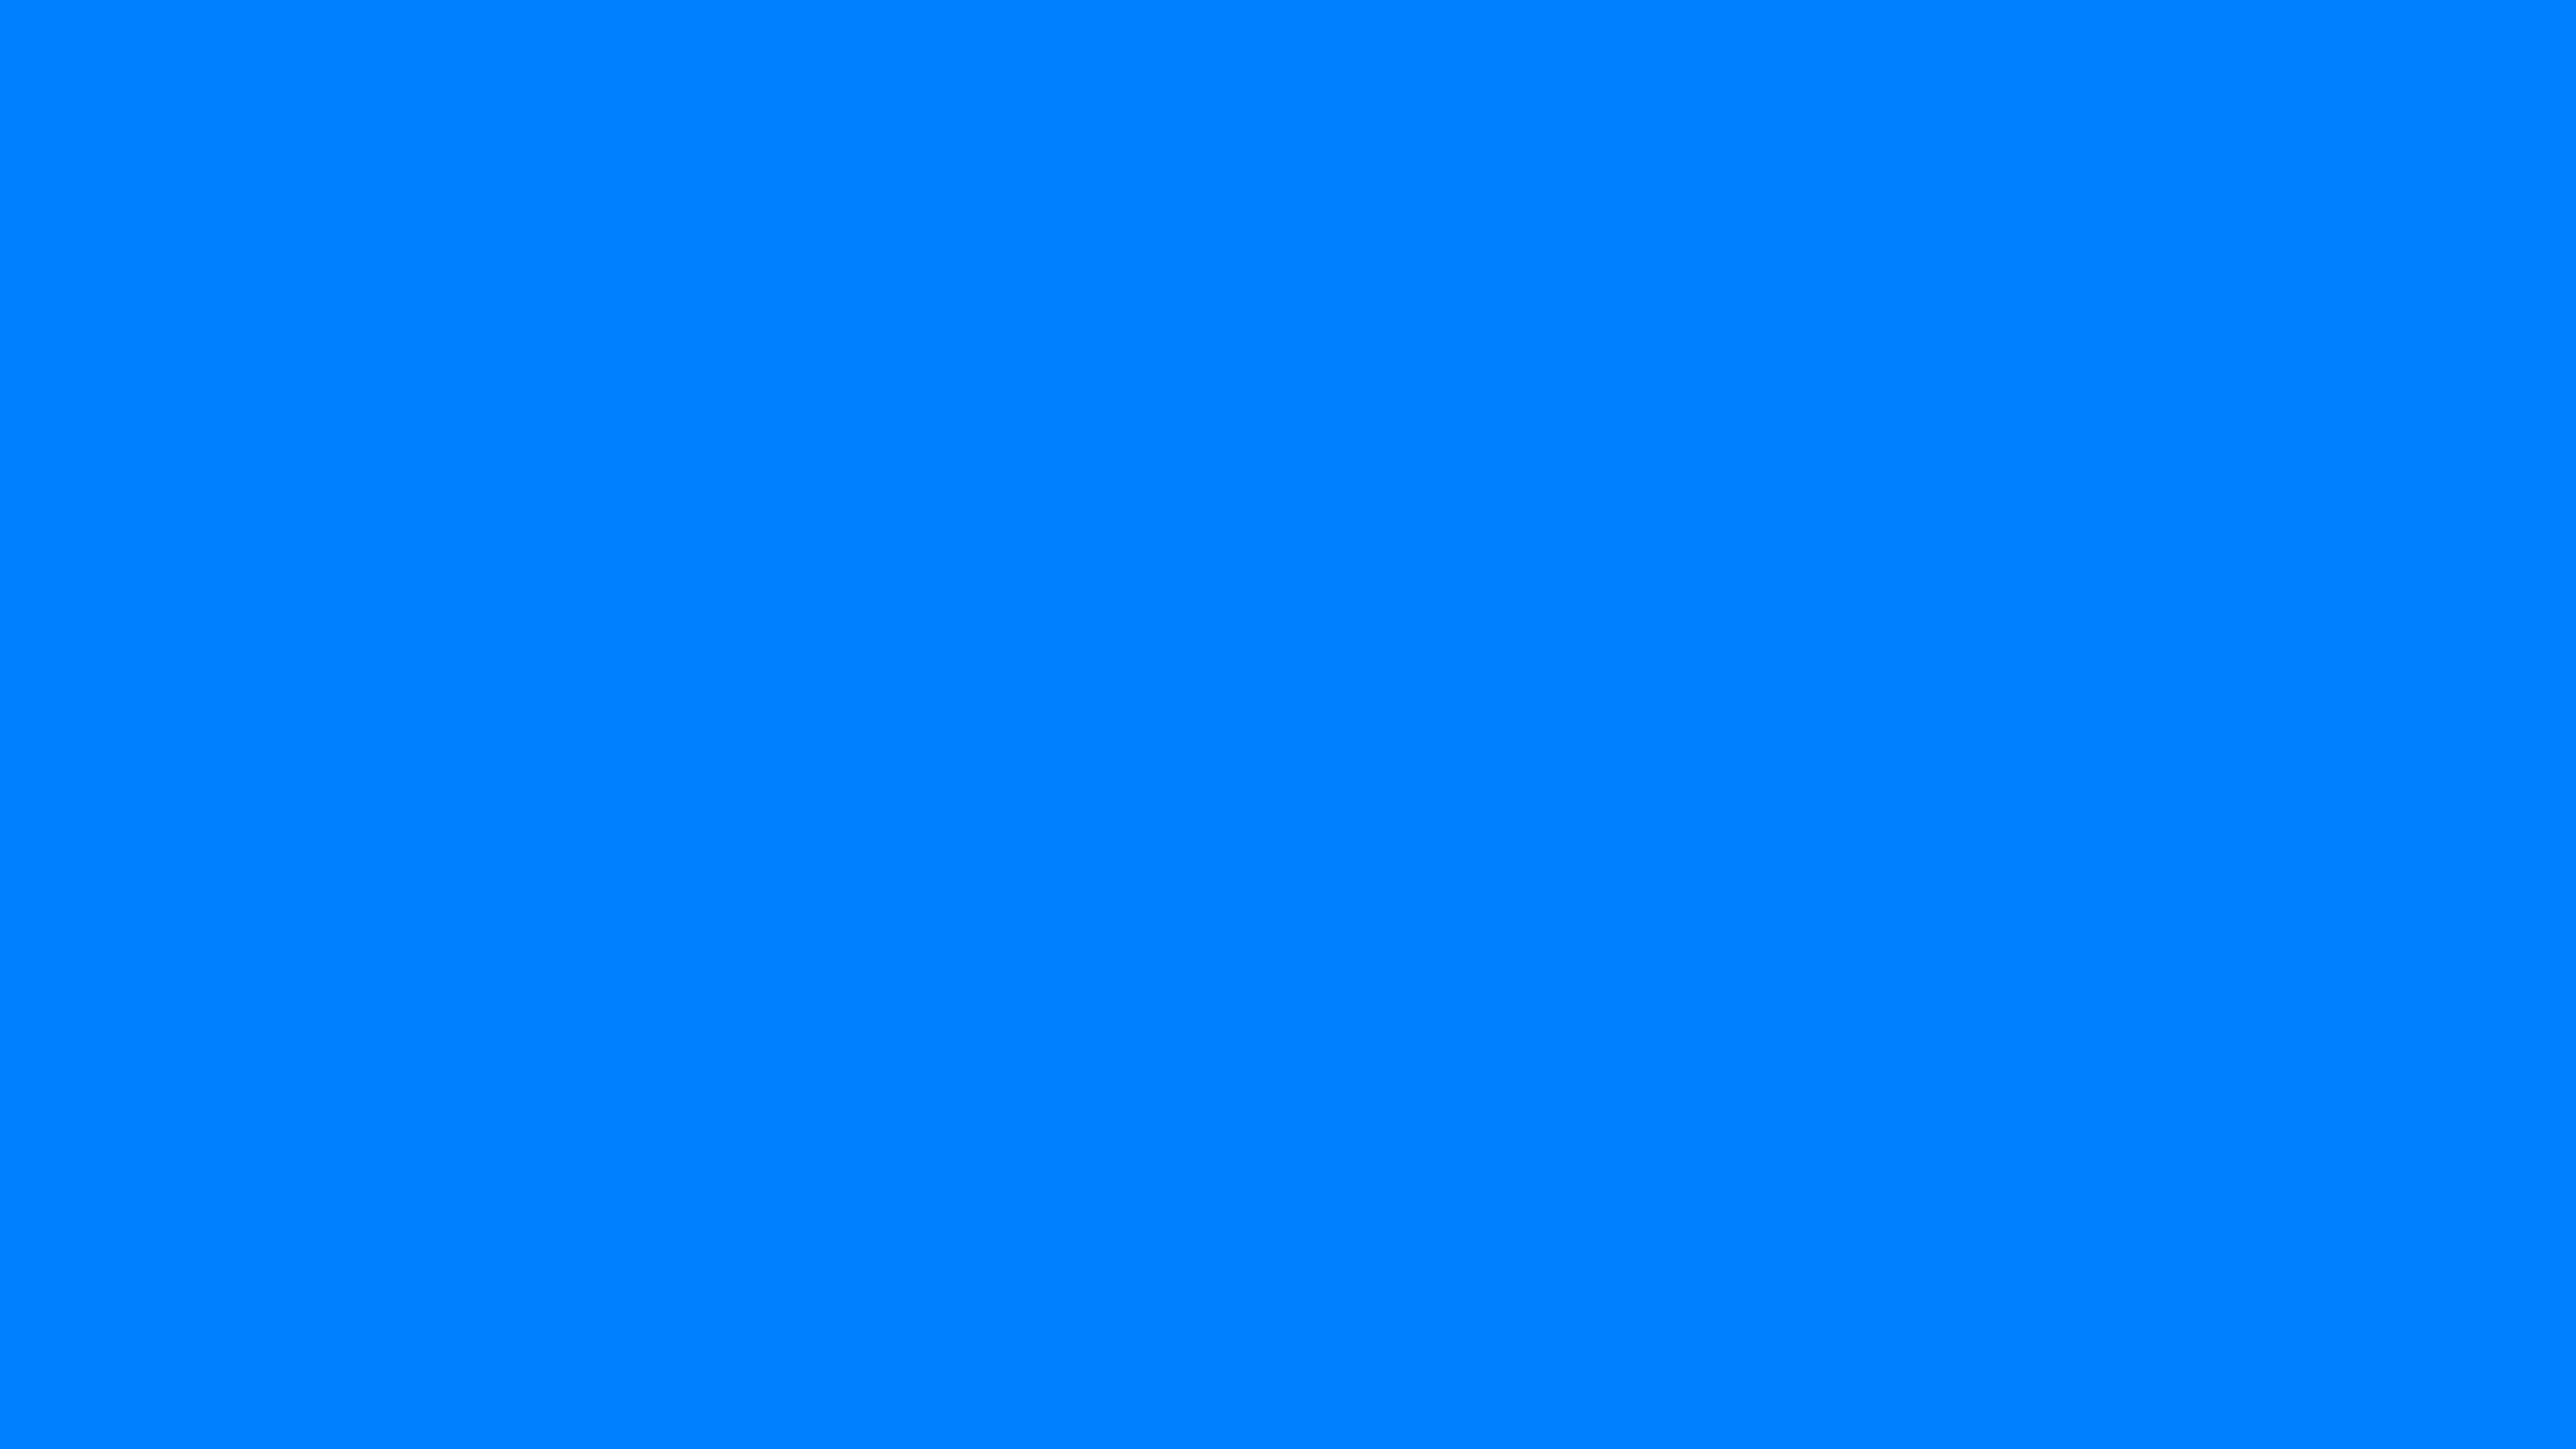 7680x4320 Azure Solid Color Background